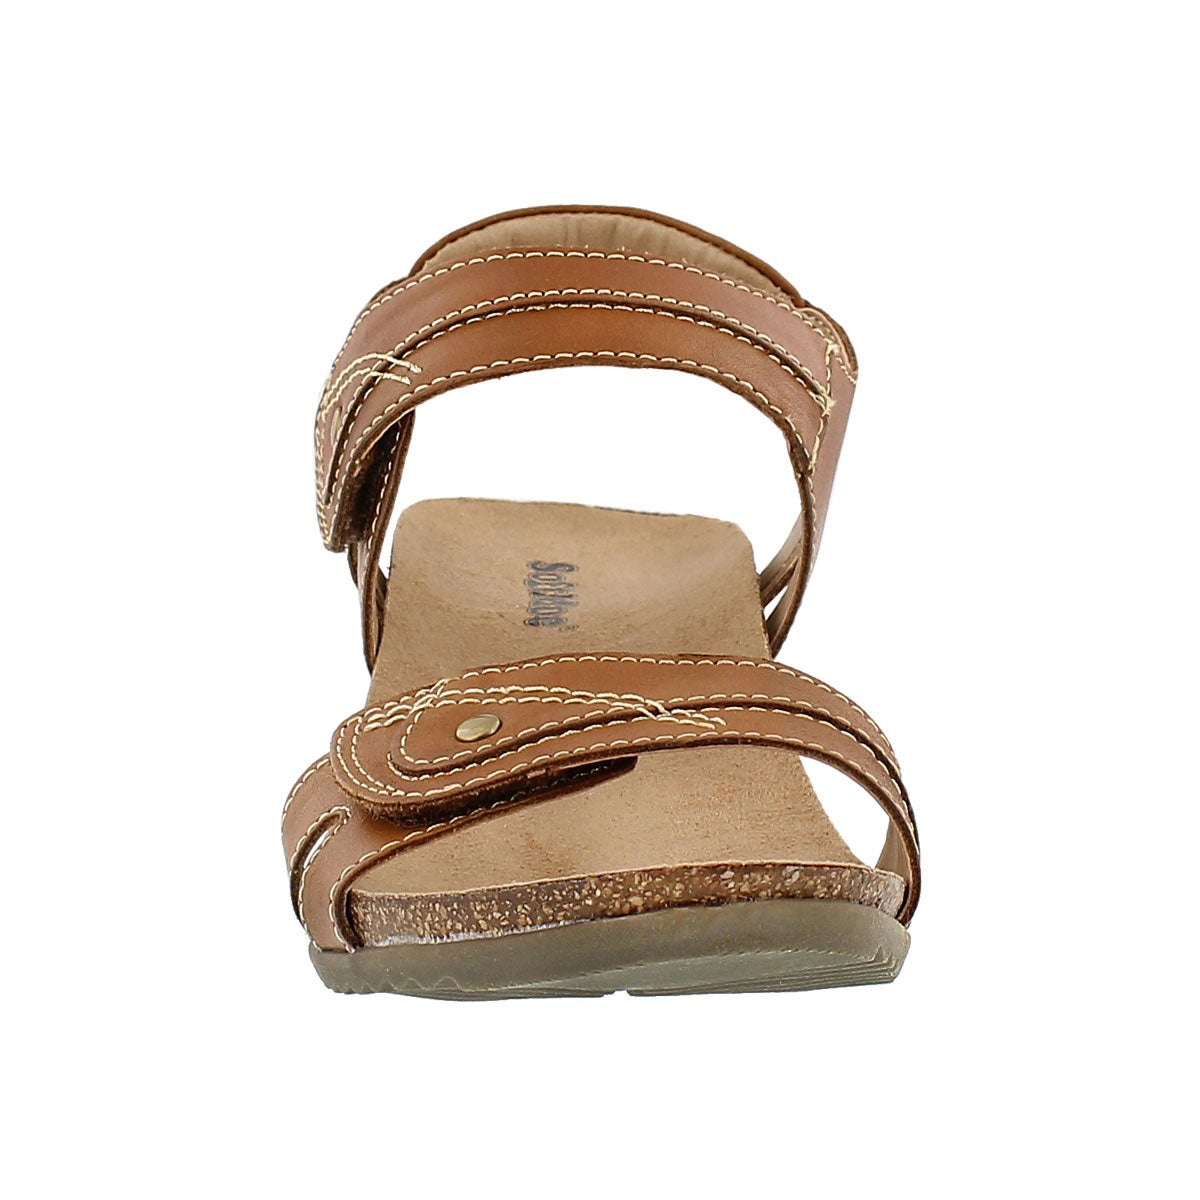 Lds Keira brown wedge sandal